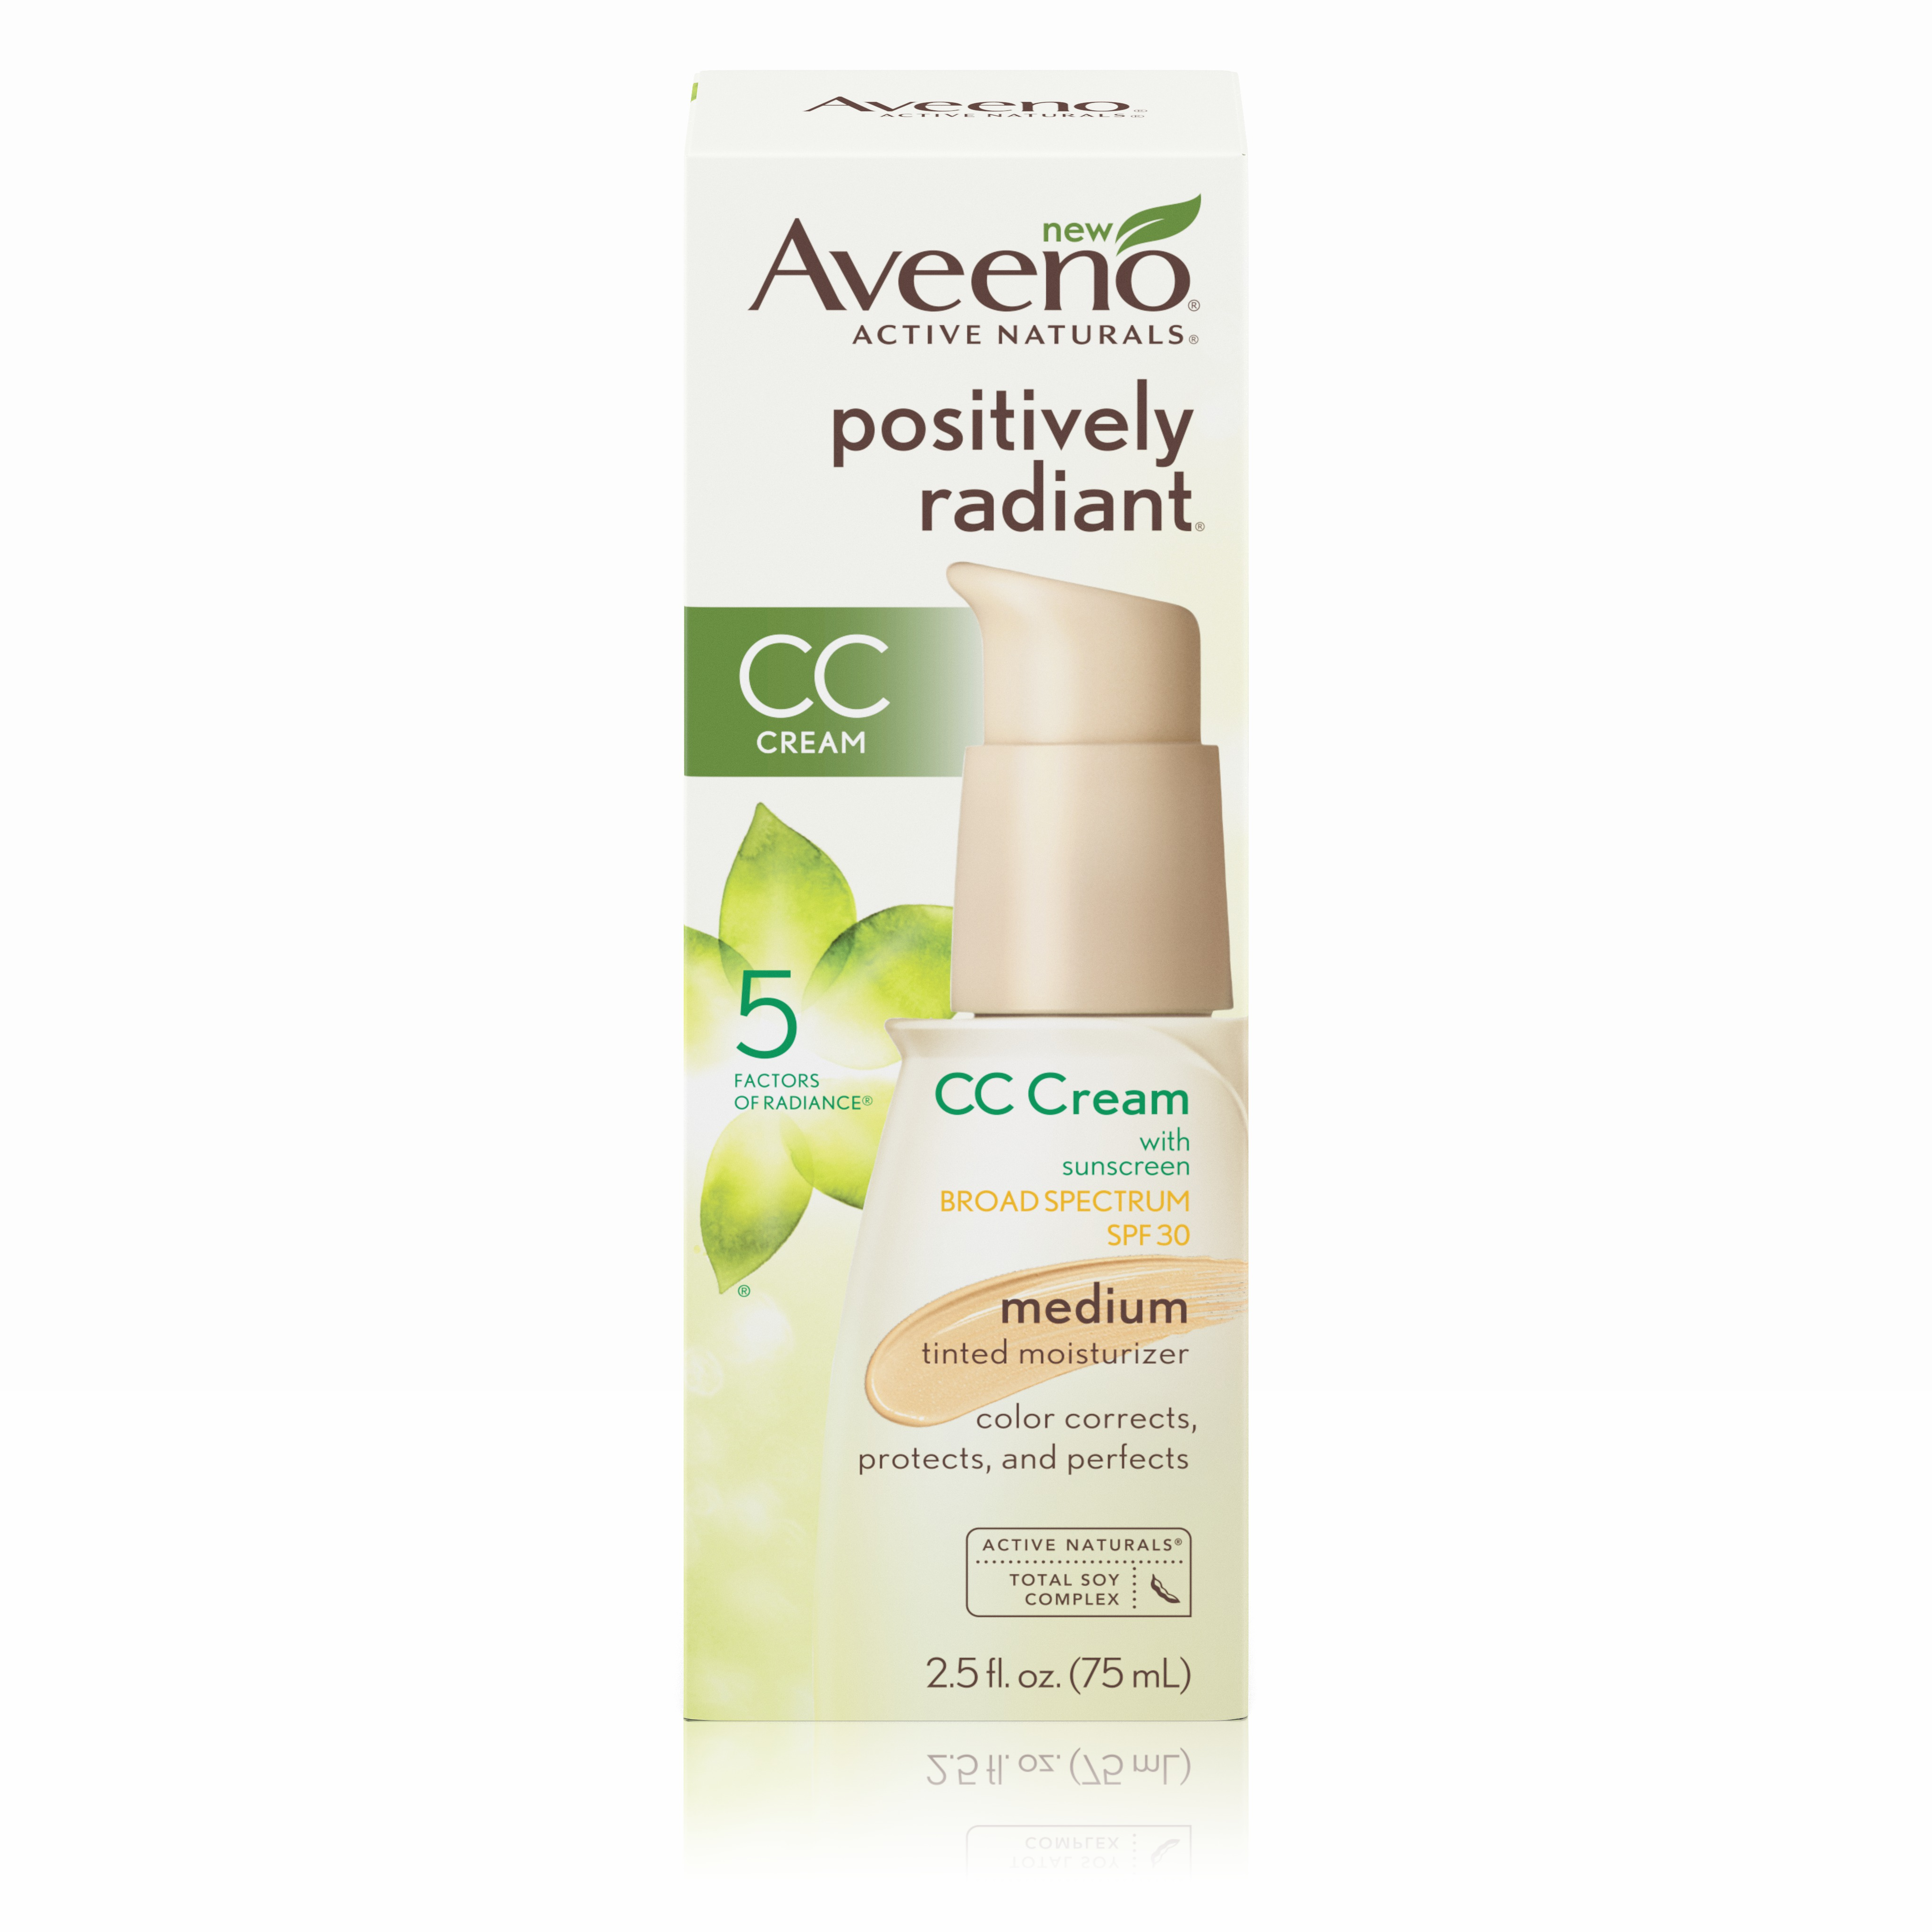 Aveeno Positively Radiant CC Cream Broad Spectrum Spf 30 Medium, Skin Color Correction,... by Johnson & Johnson